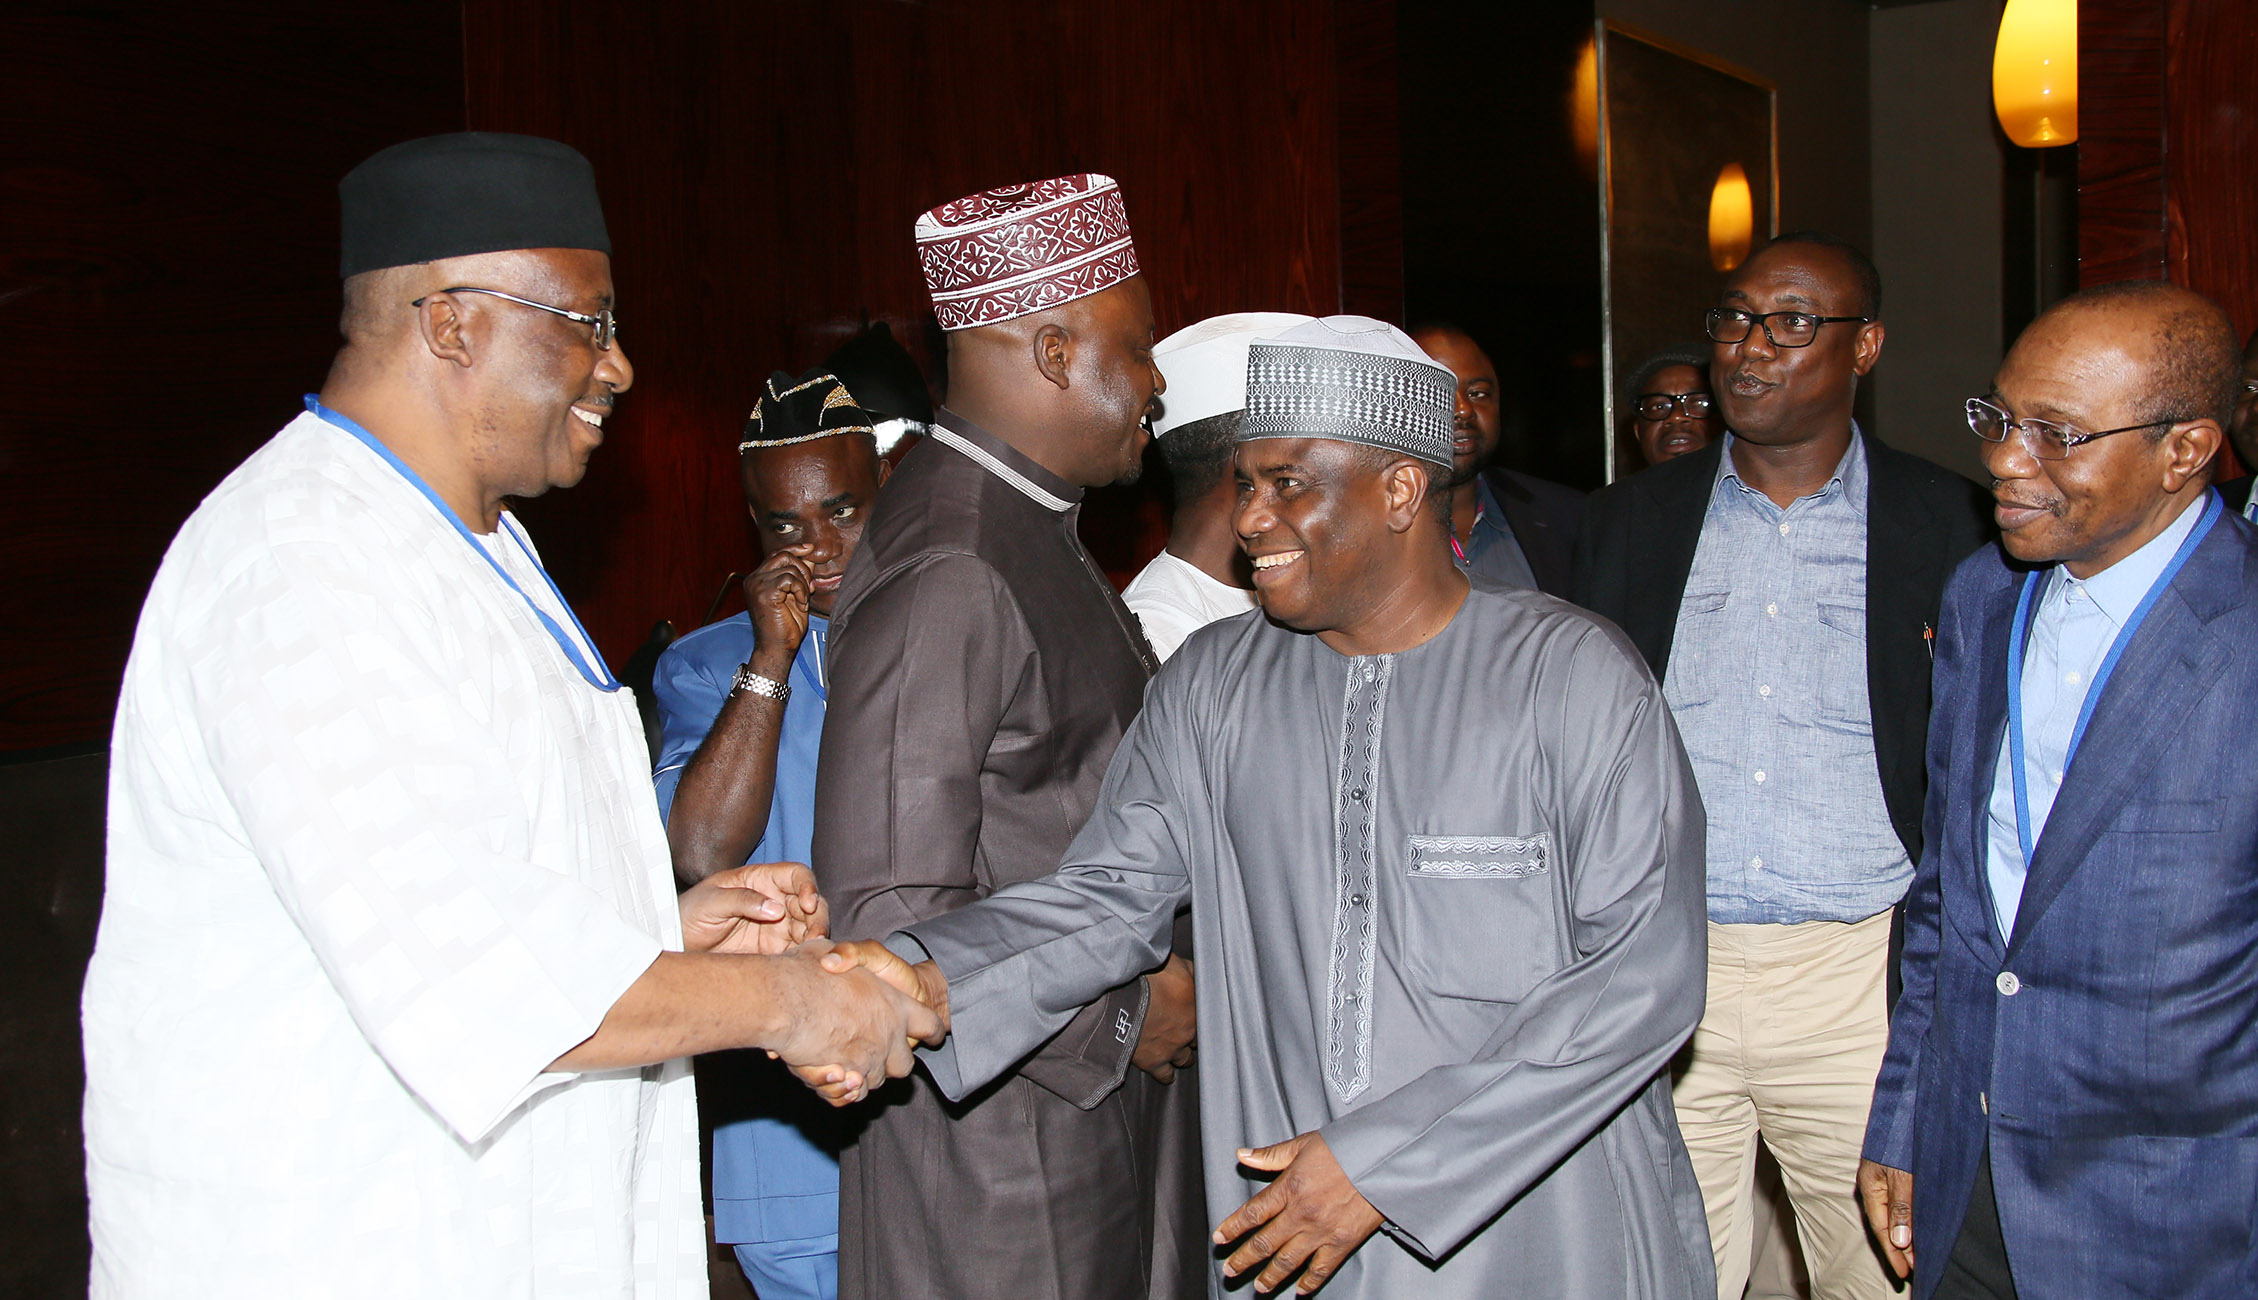 L-R: Former Chief of Army Staff, Lt General Abdulrahman Dambazau, Senior Special Assistant to the President on National Assembly (House of Reps), Hon Kawu Abdulrahman, Sokoto State Governor, Rt Hon Amuinu Tambuwal and CBN Governor Mr Godwin Emefiele.